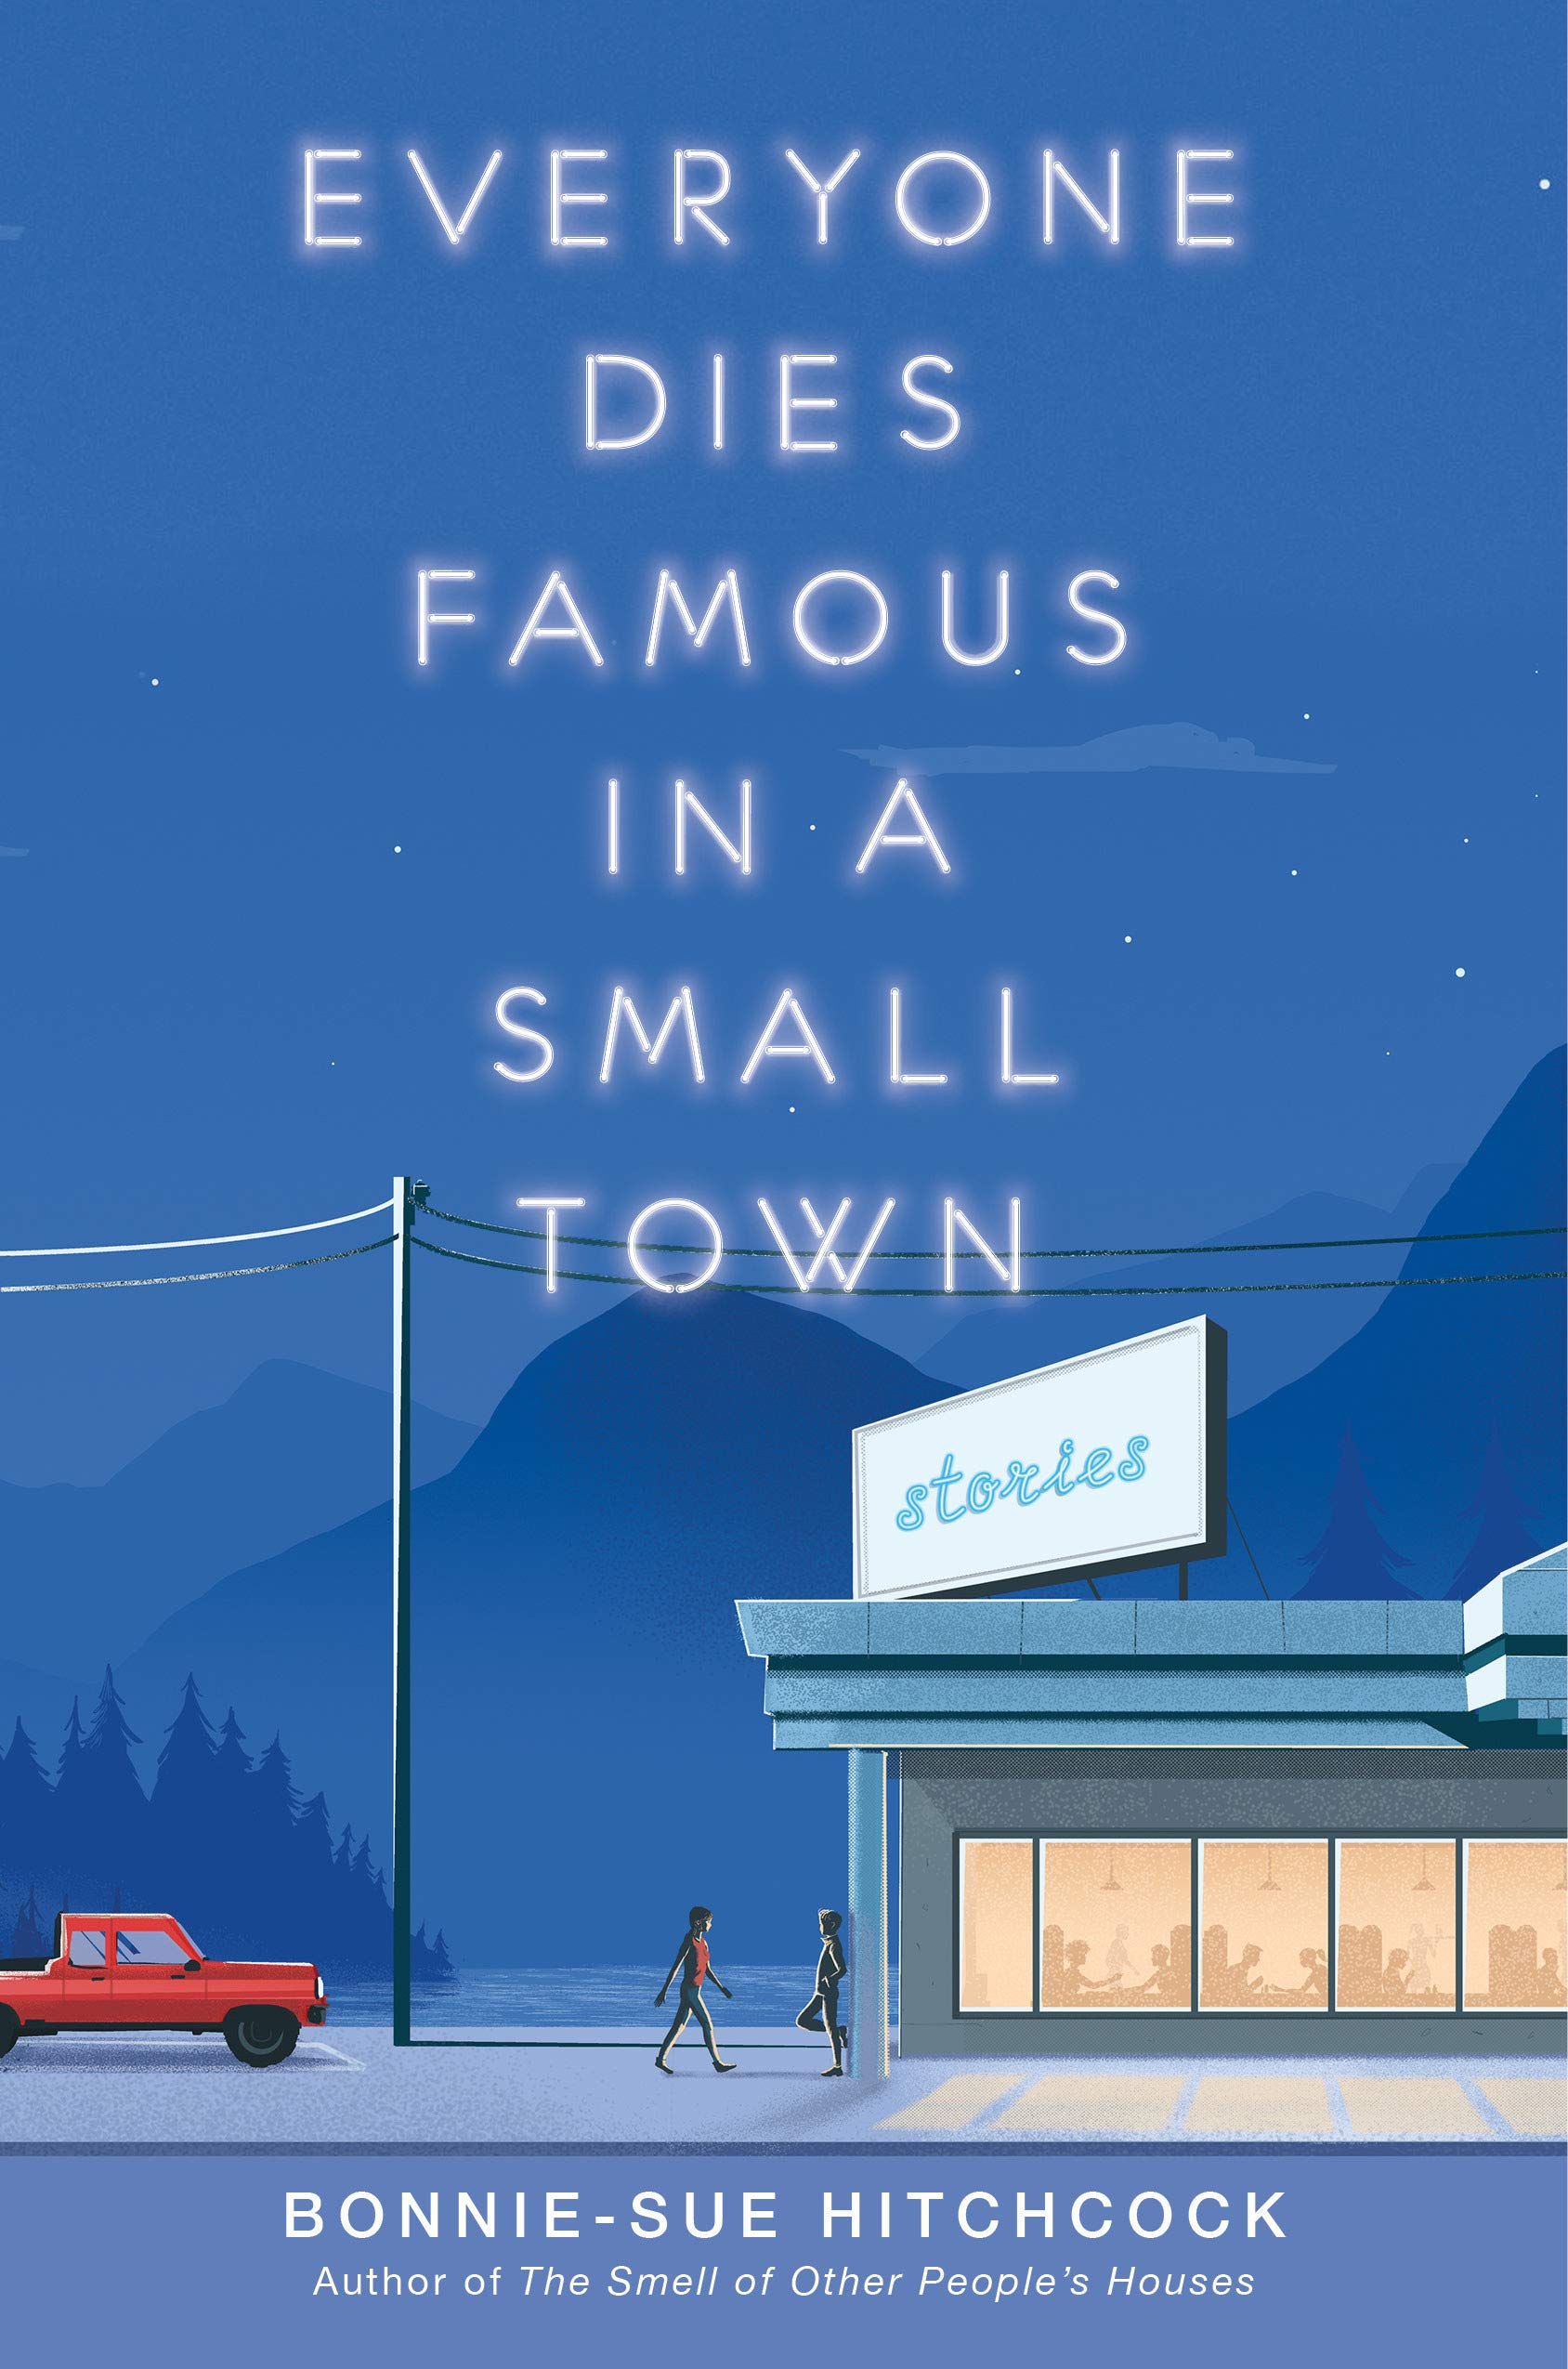 Amazon.com: Everyone Dies Famous in a Small Town (9781984892591): Hitchcock,  Bonnie-Sue: Books